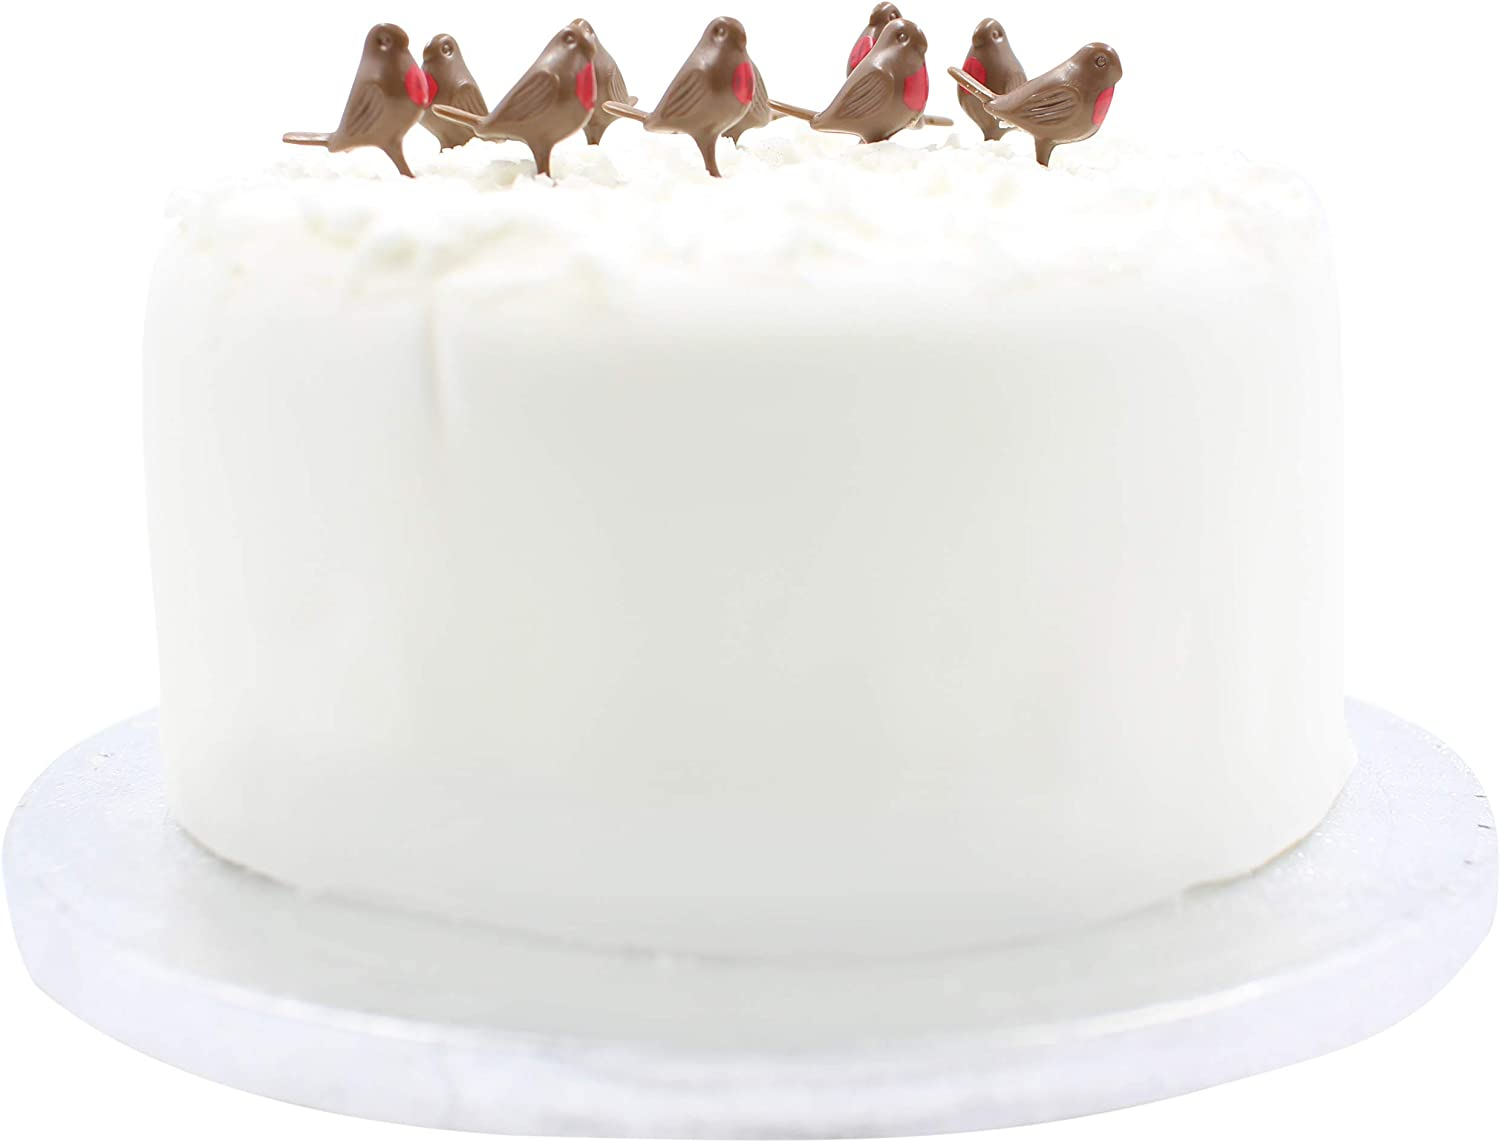 Robbin Christmas Cake Toppers red Decorations Yule Log Cupcake Muffin 10 x Robins Toppers